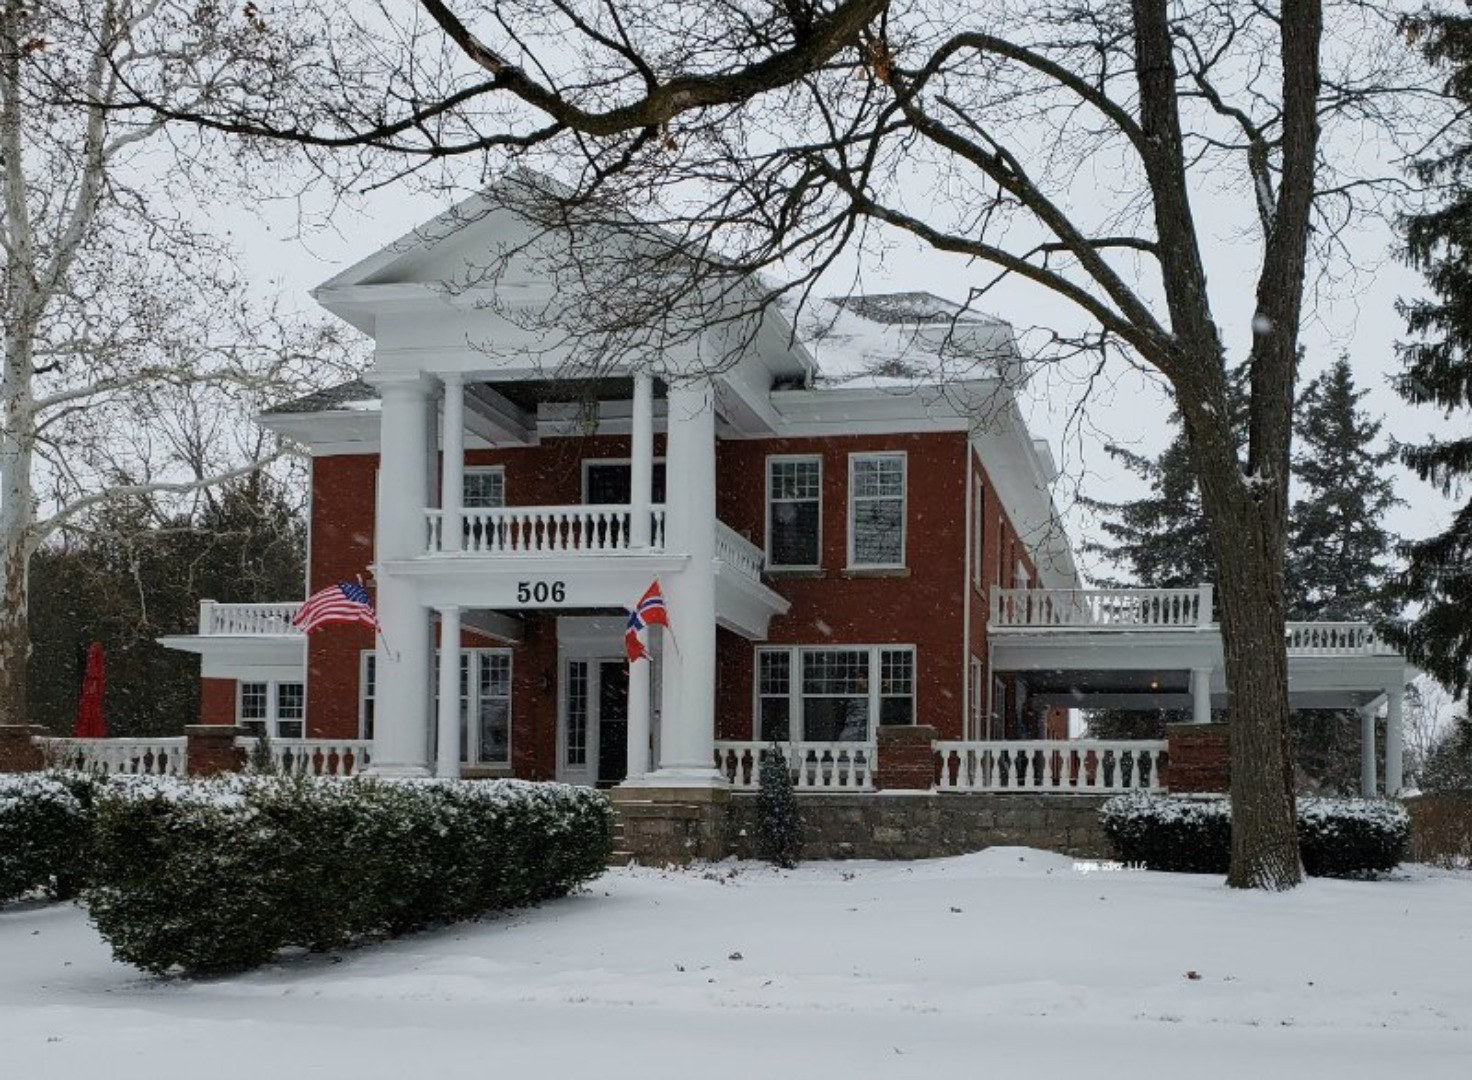 A house covered in snow at The Nordic Pineapple Bed and Breakfast.